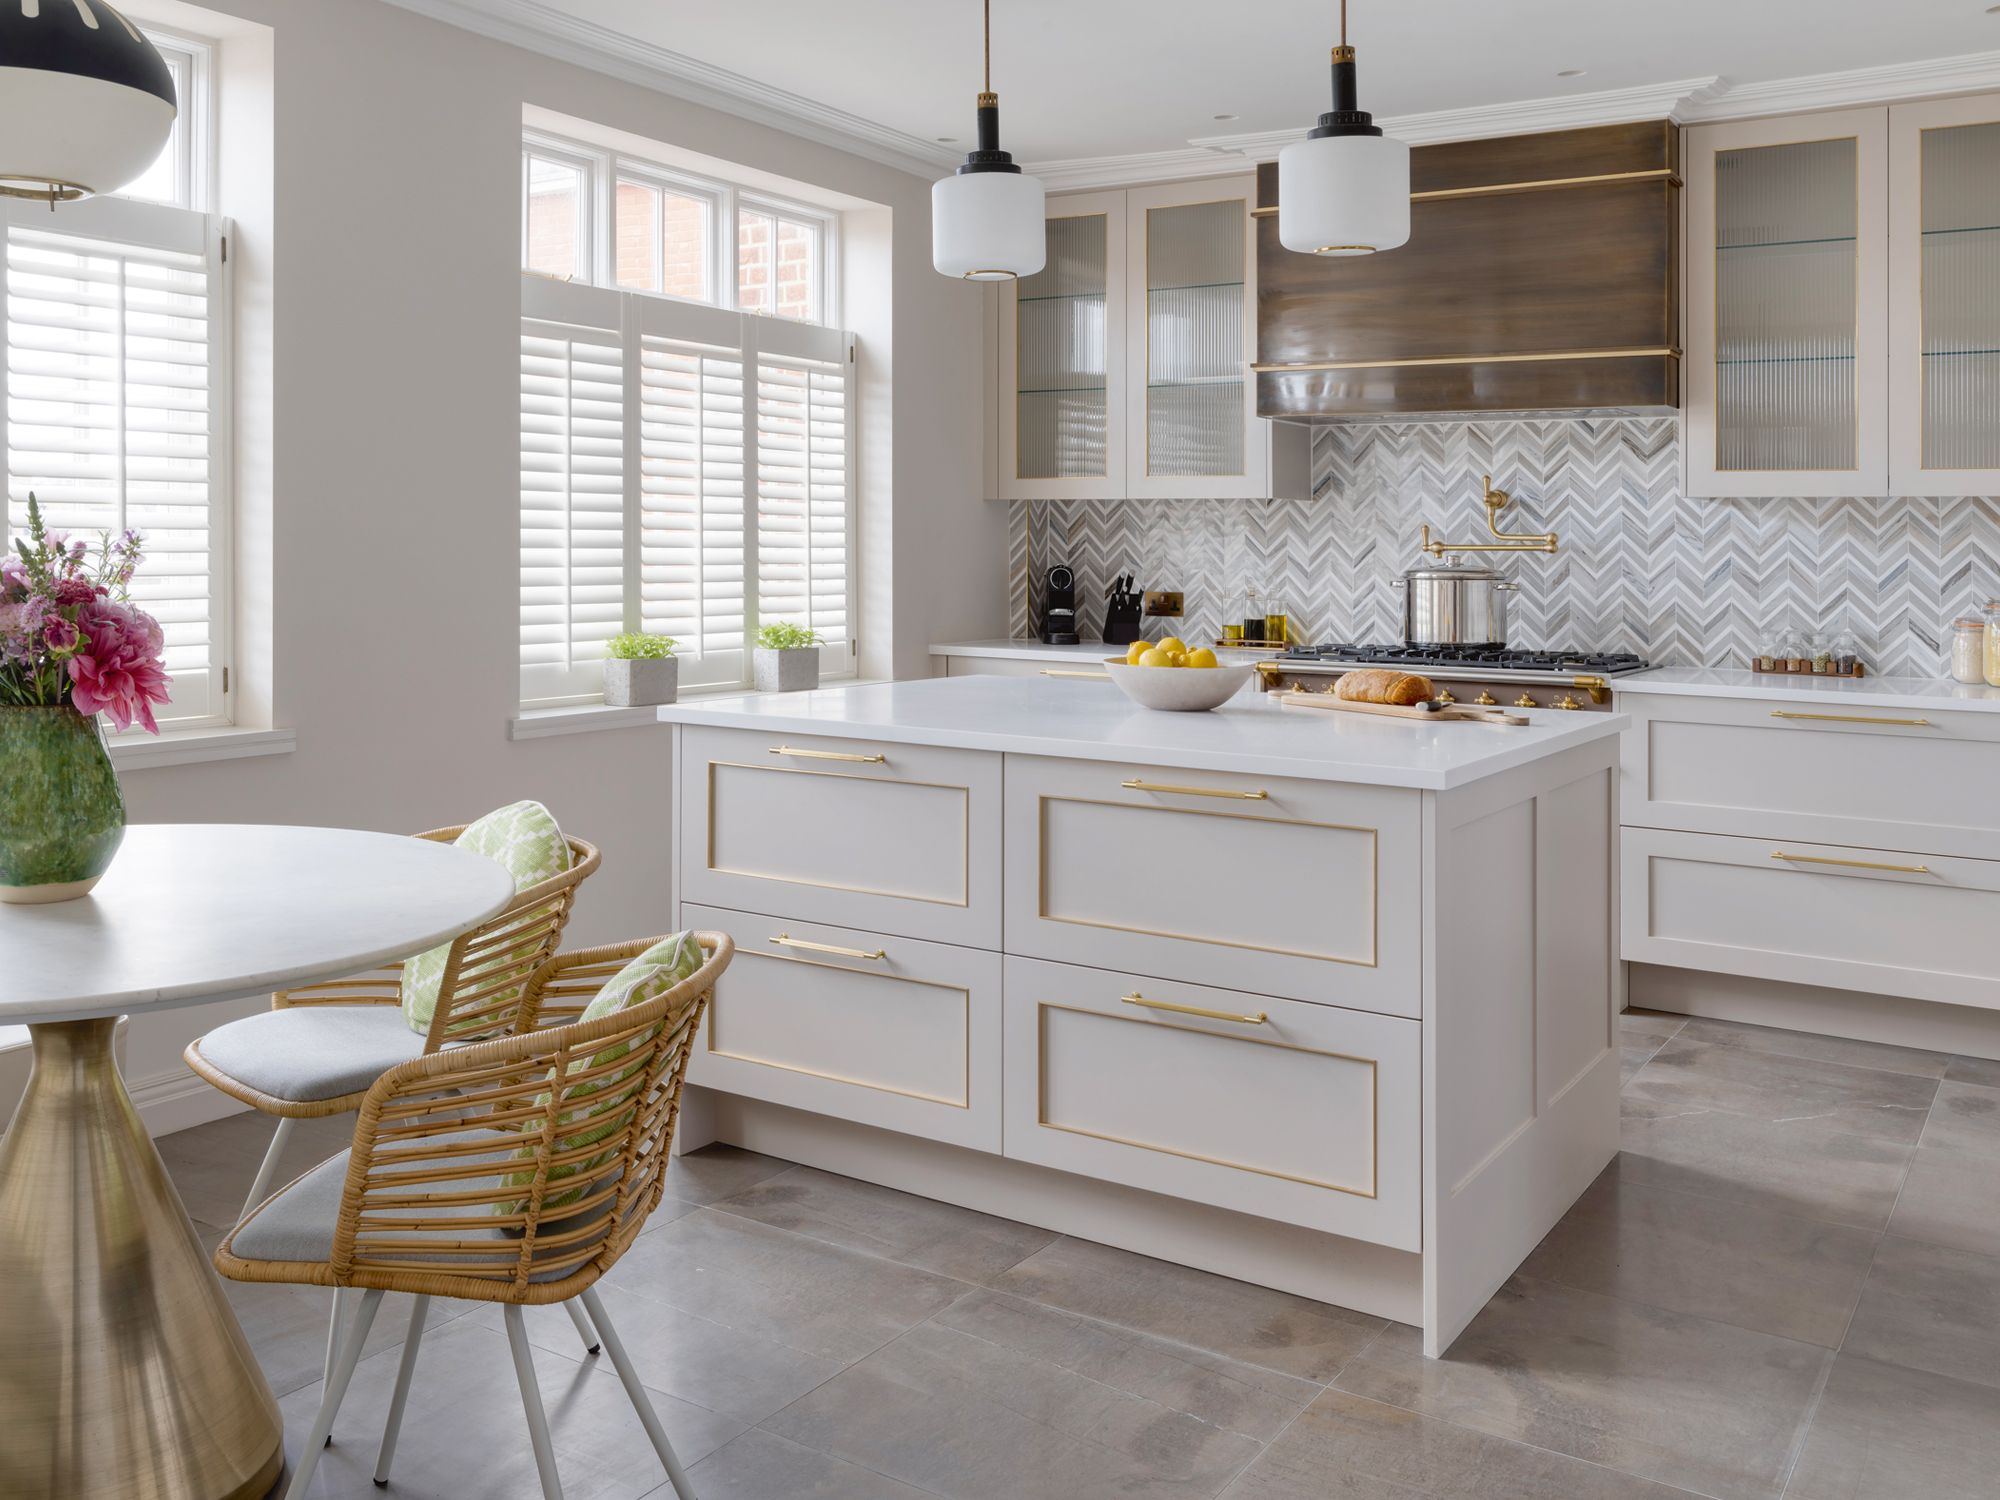 A herrigbone-patterned backsplash and Grigio Tunisi marble flooring contribute to the layered look of the kitchen's neutral scheme